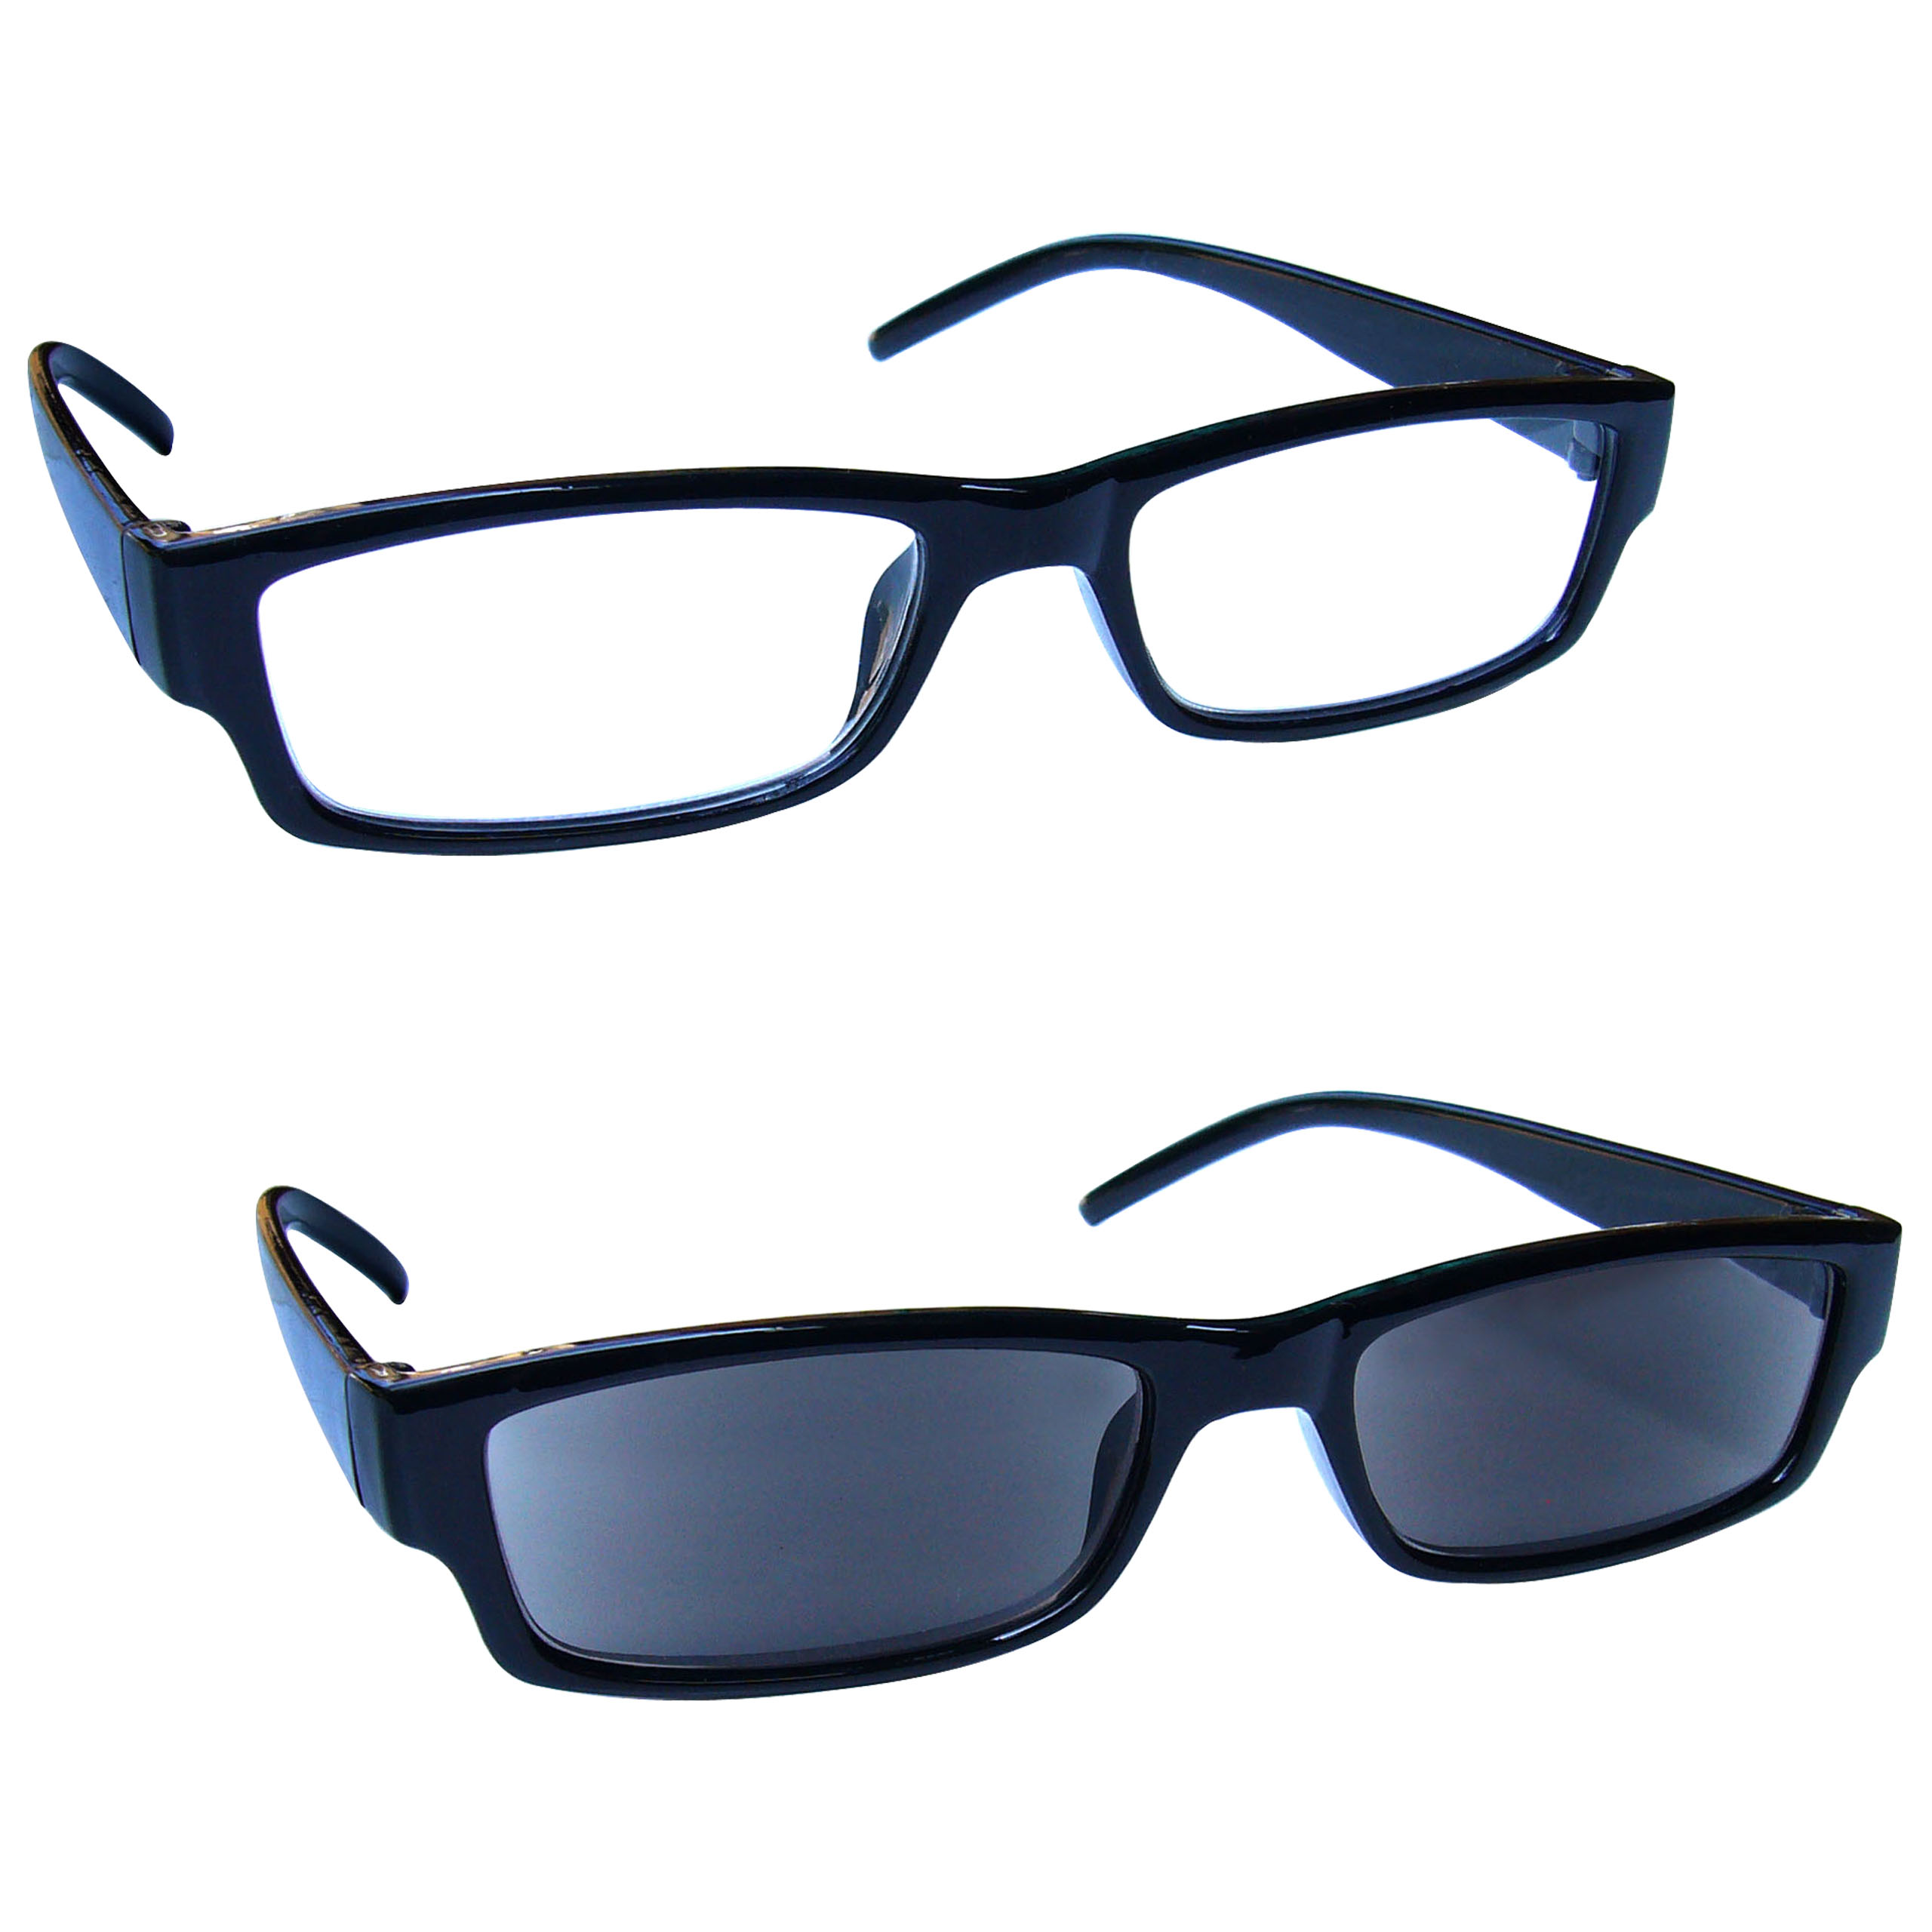 uv reader lightweight sun readers reading glasses